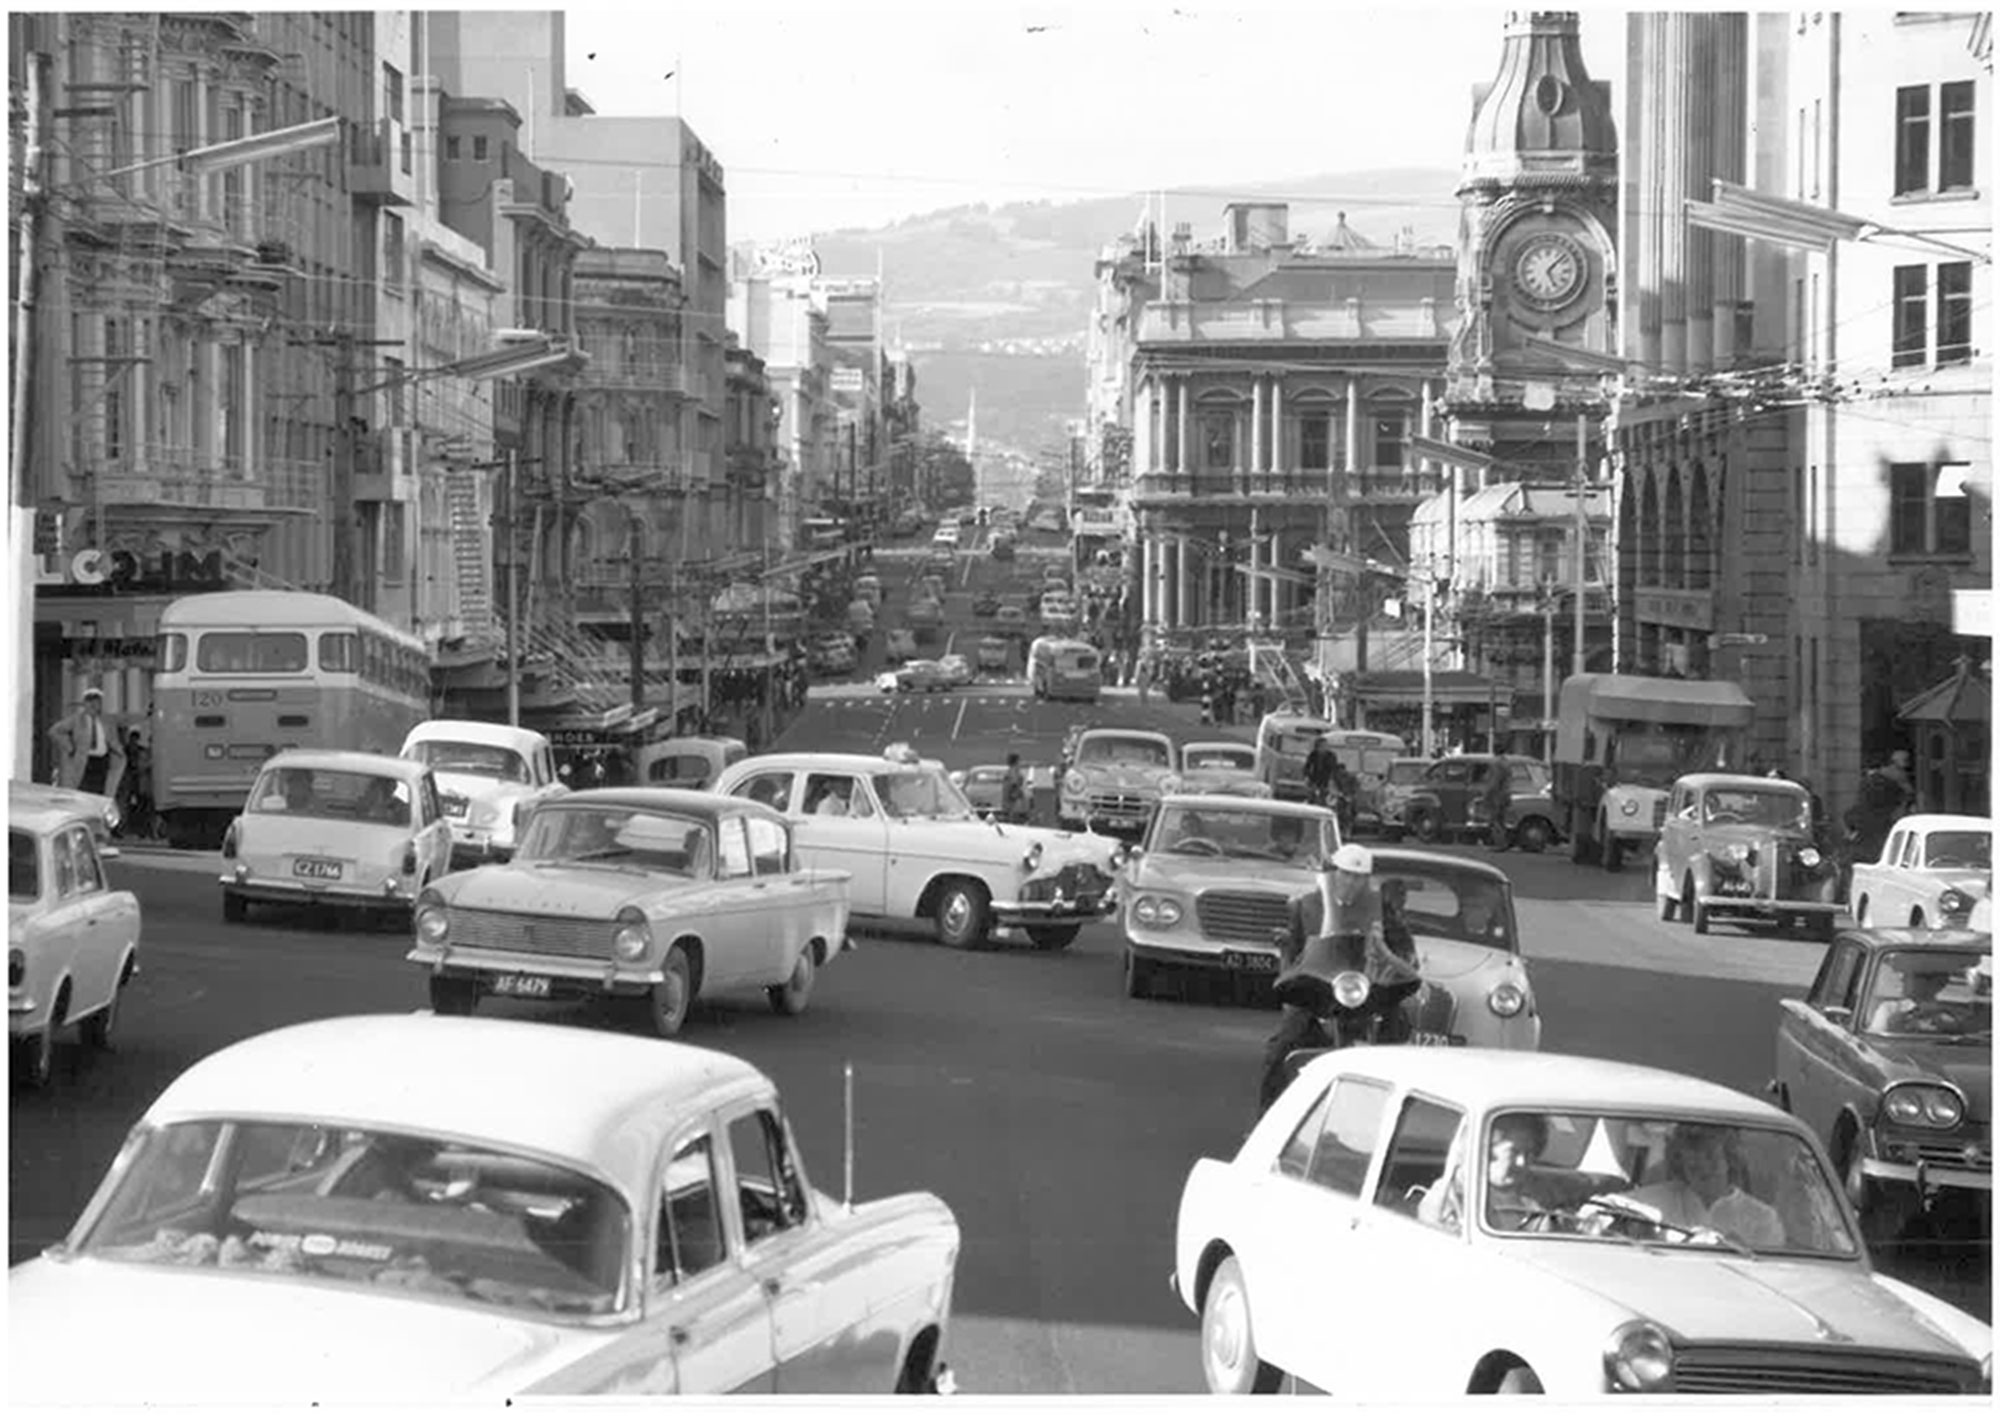 Princes St in the 1960s.